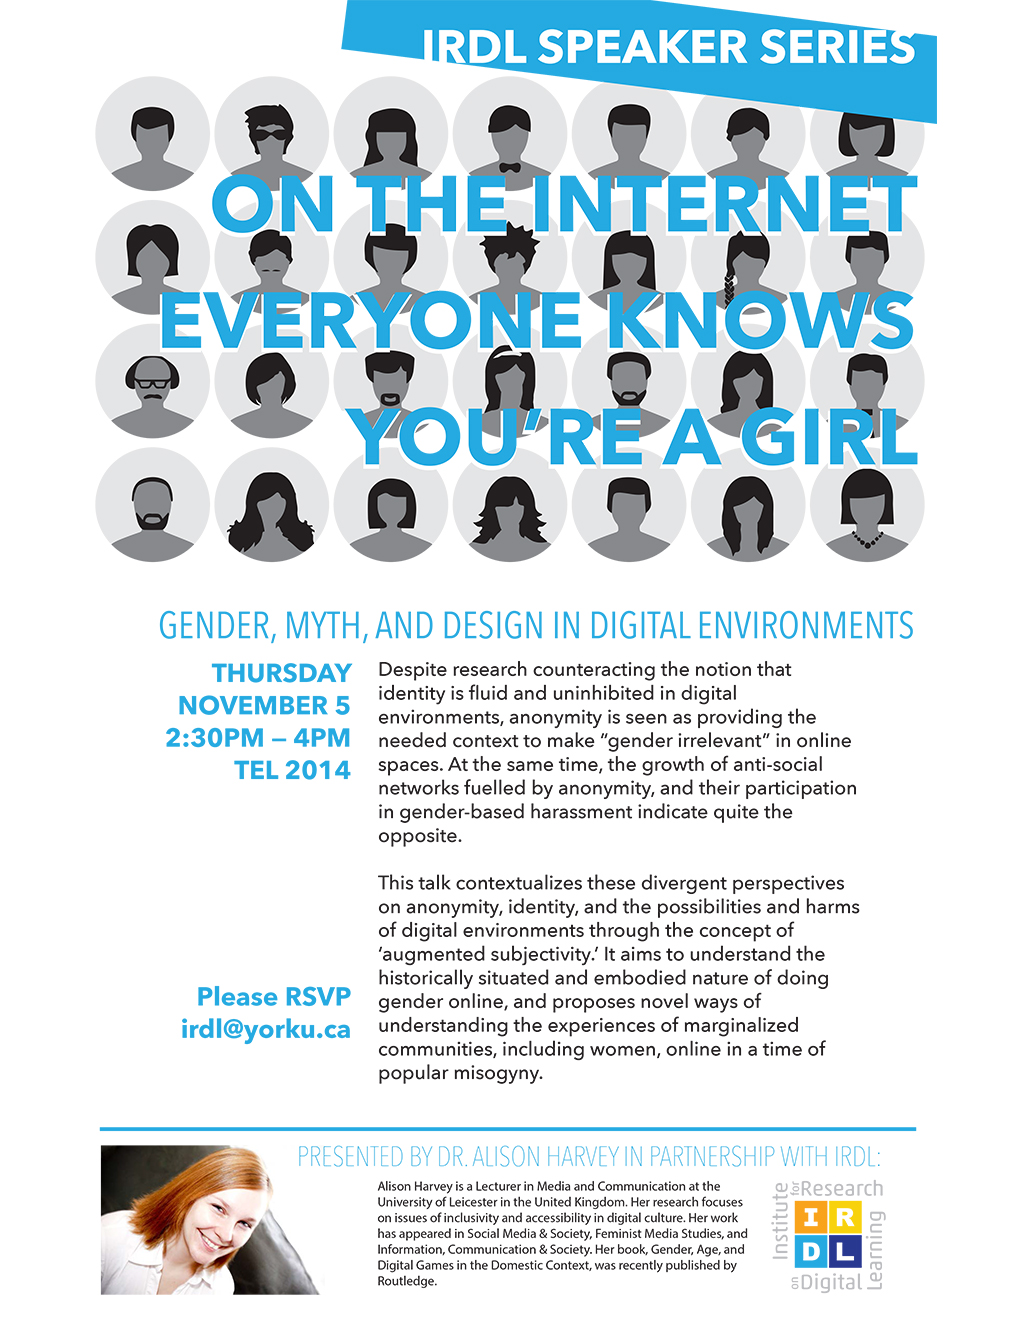 On the Internet, Everyone Knows You're a Girl: Gender, Myth, and Design in Digital Environments